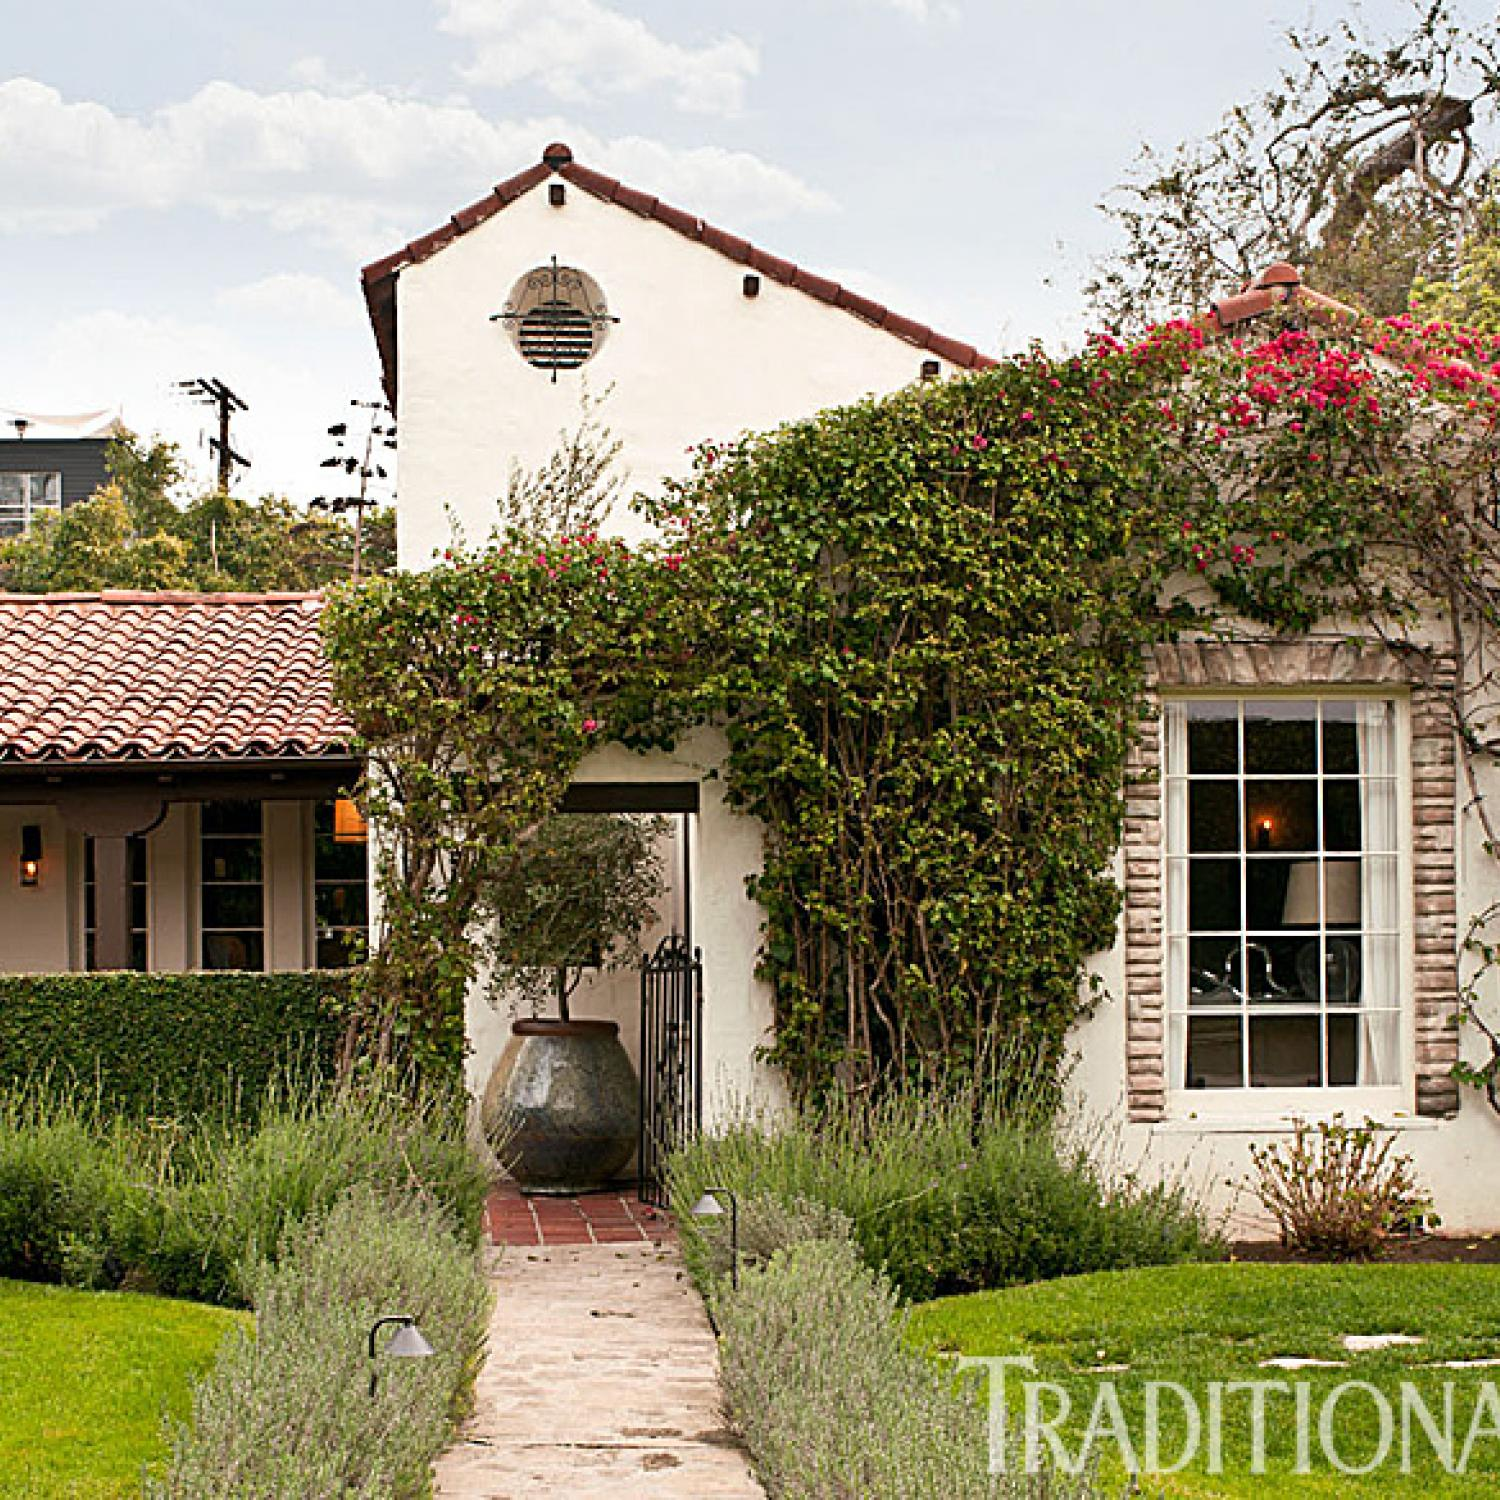 Mediterranean Revival Designs Curated By Los Angeles: Fresh, Classic Style In A West Hollywood Home